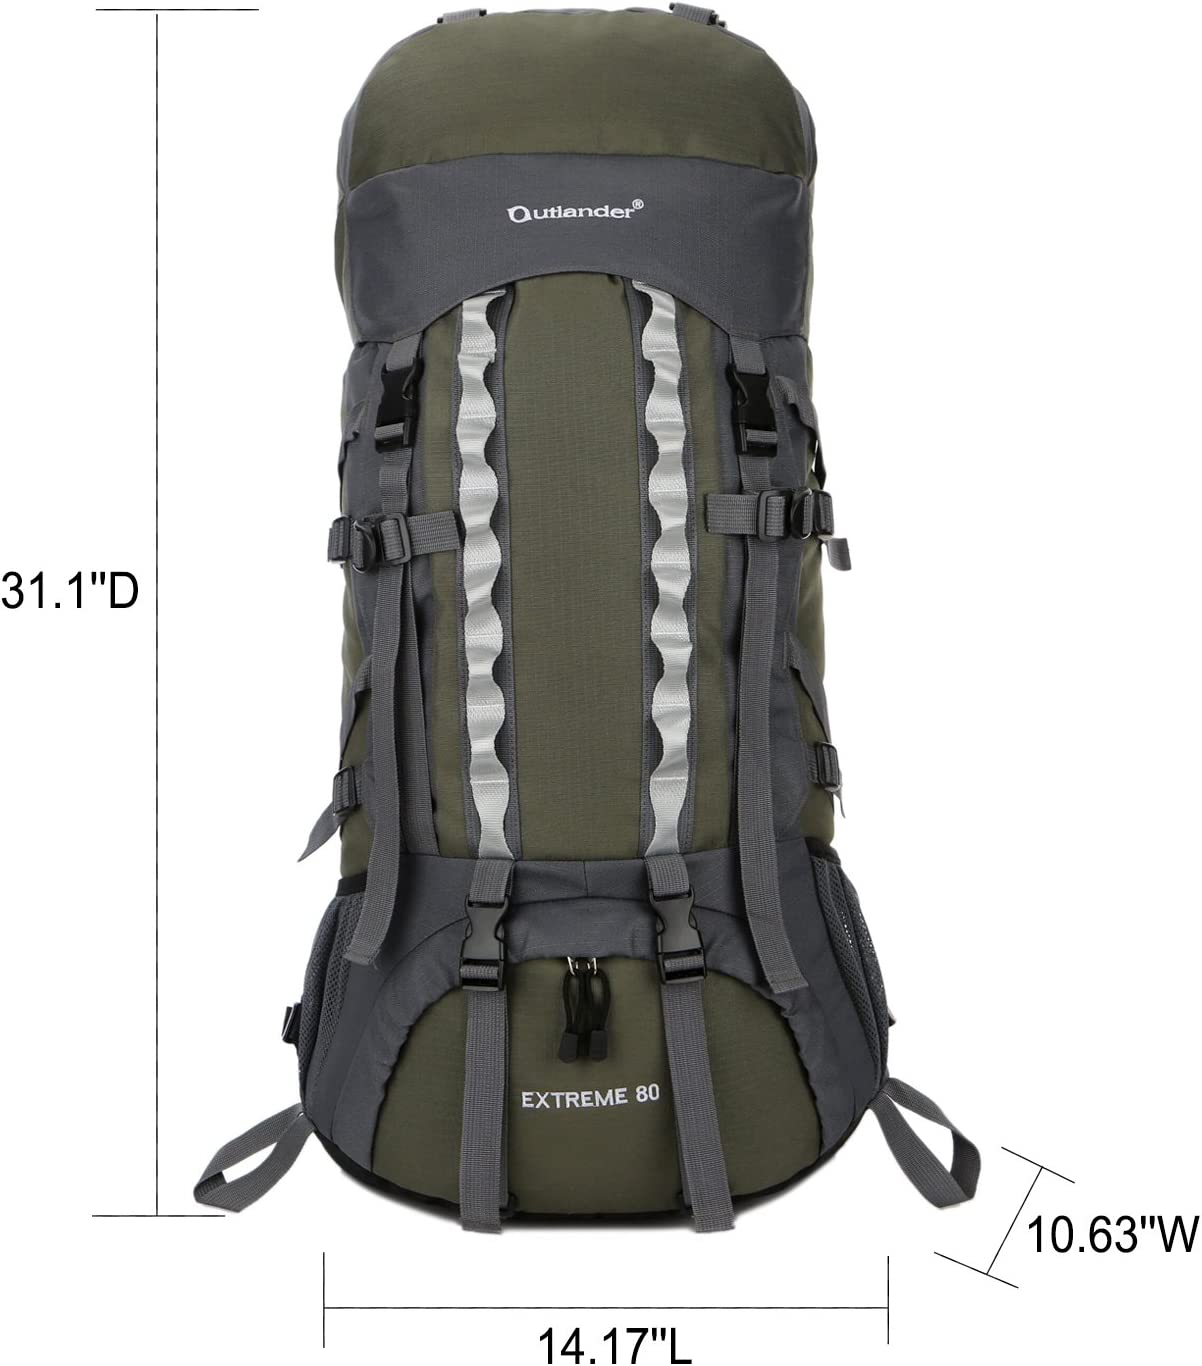 Internal Frame Backpacking Backpack for Hikers Glumes 80L Hiking Backpack Waterproof Lightweight for Women Men Trekking Frame Pack Fit Outdoor Travel Mountaineering Camping